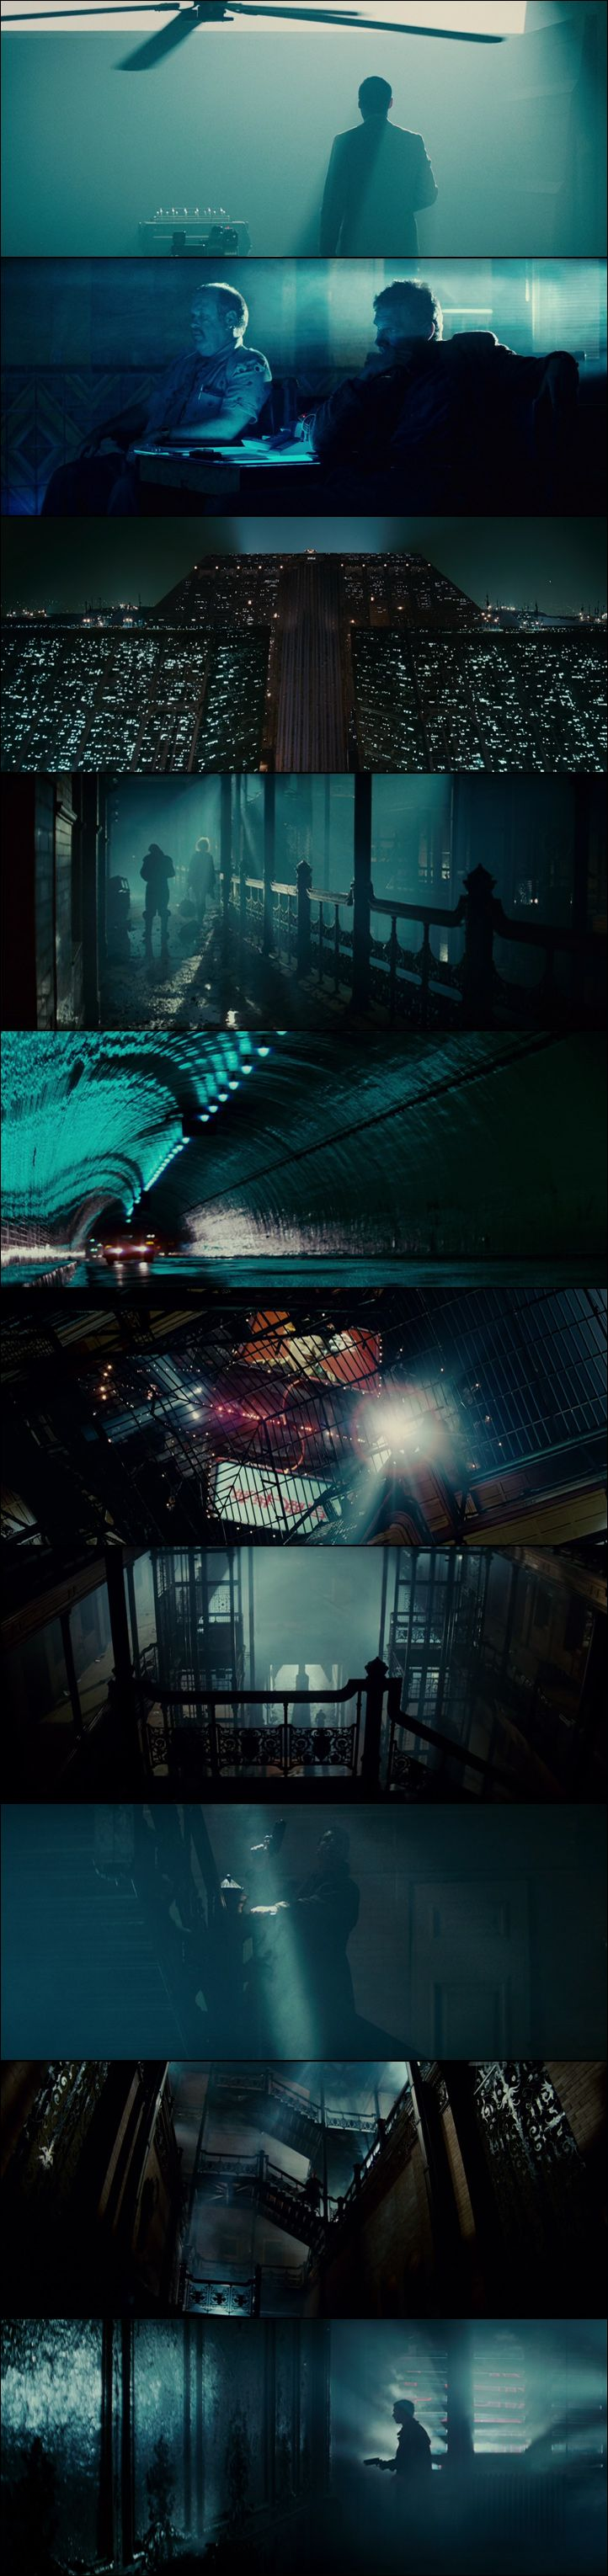 Blade Runner (1982) | Painting with Lights Cinematography: Jordan Cronenweth